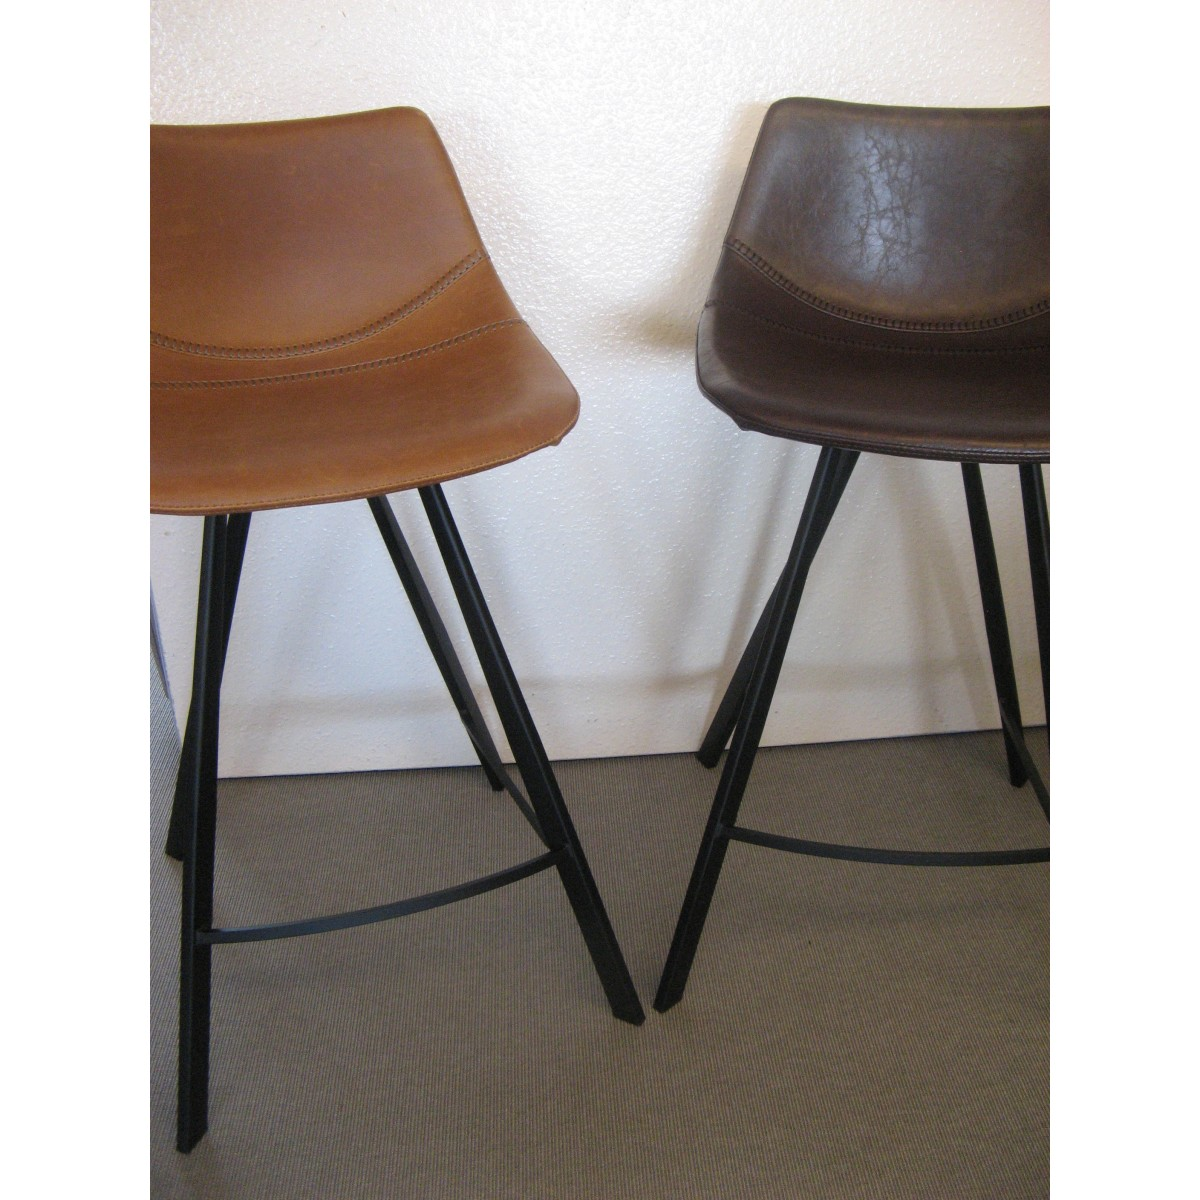 tabouret de bar alecia vintage en simili cuir marron et pied en m tal. Black Bedroom Furniture Sets. Home Design Ideas